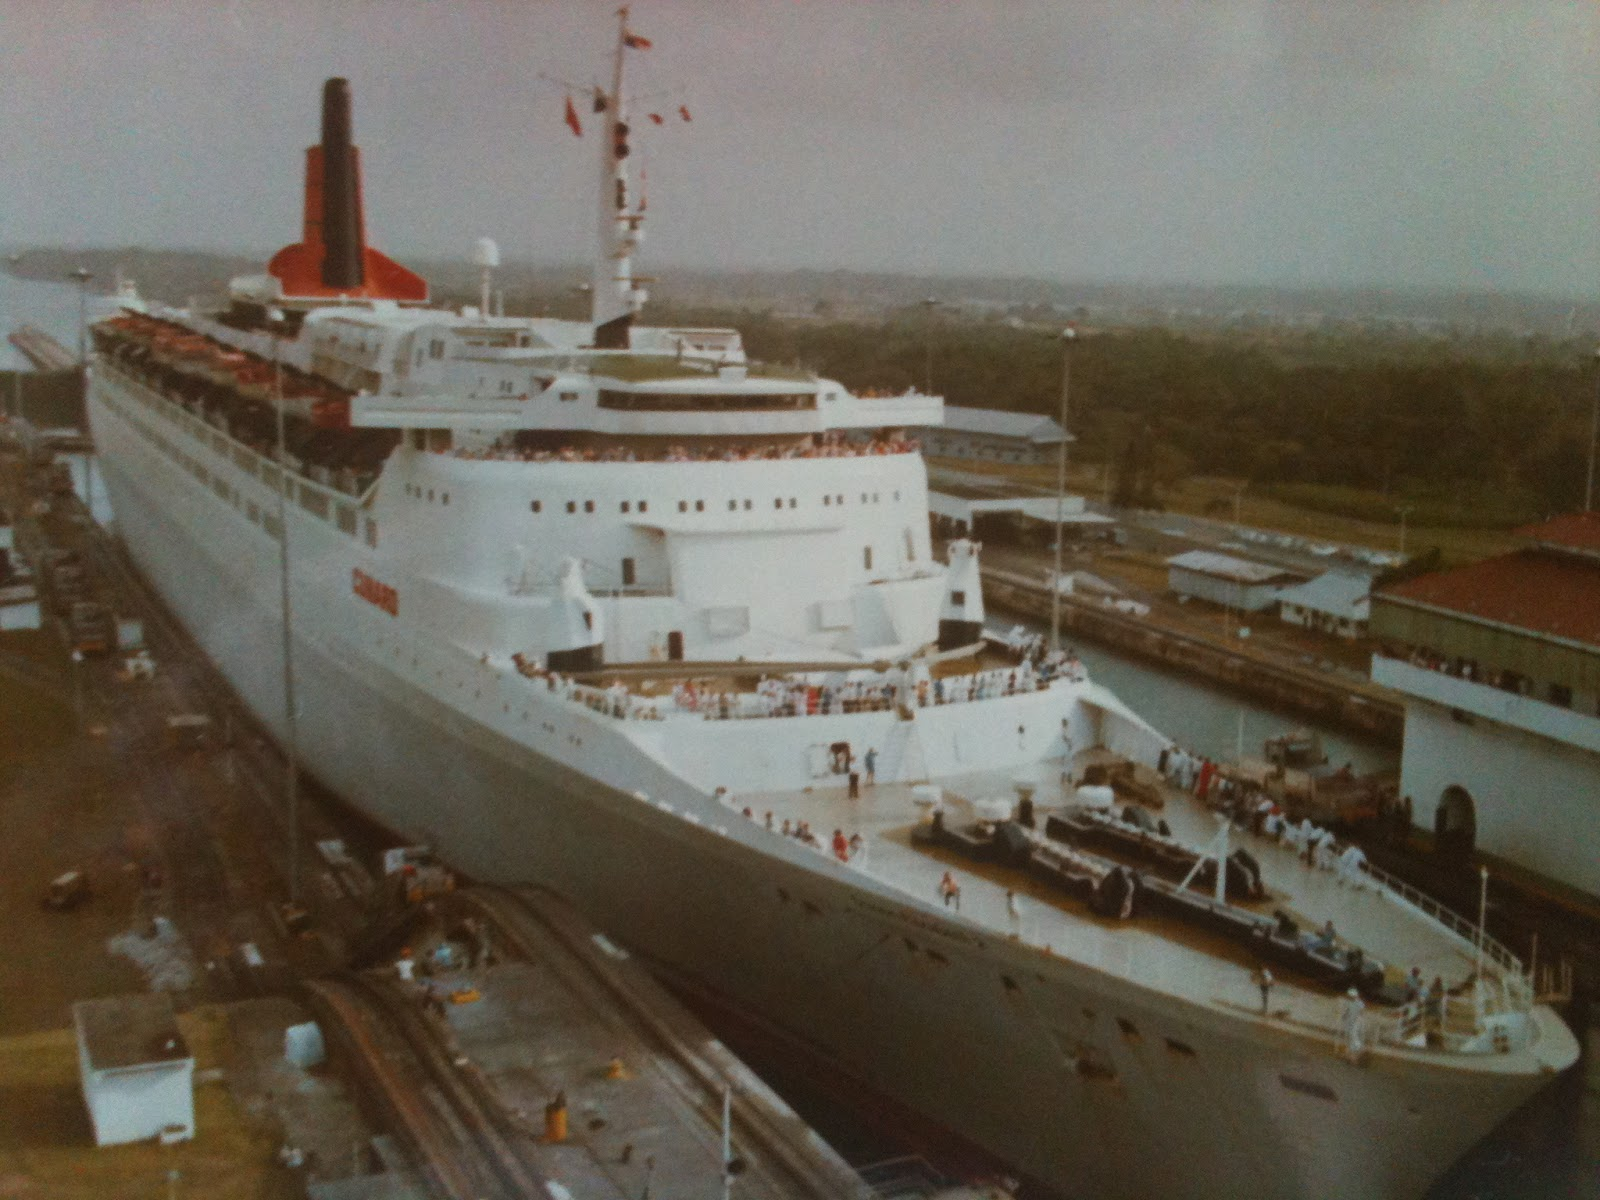 QE2 transits the Panama Canal wearing her short-lived pebble-gray livery, January 1983.